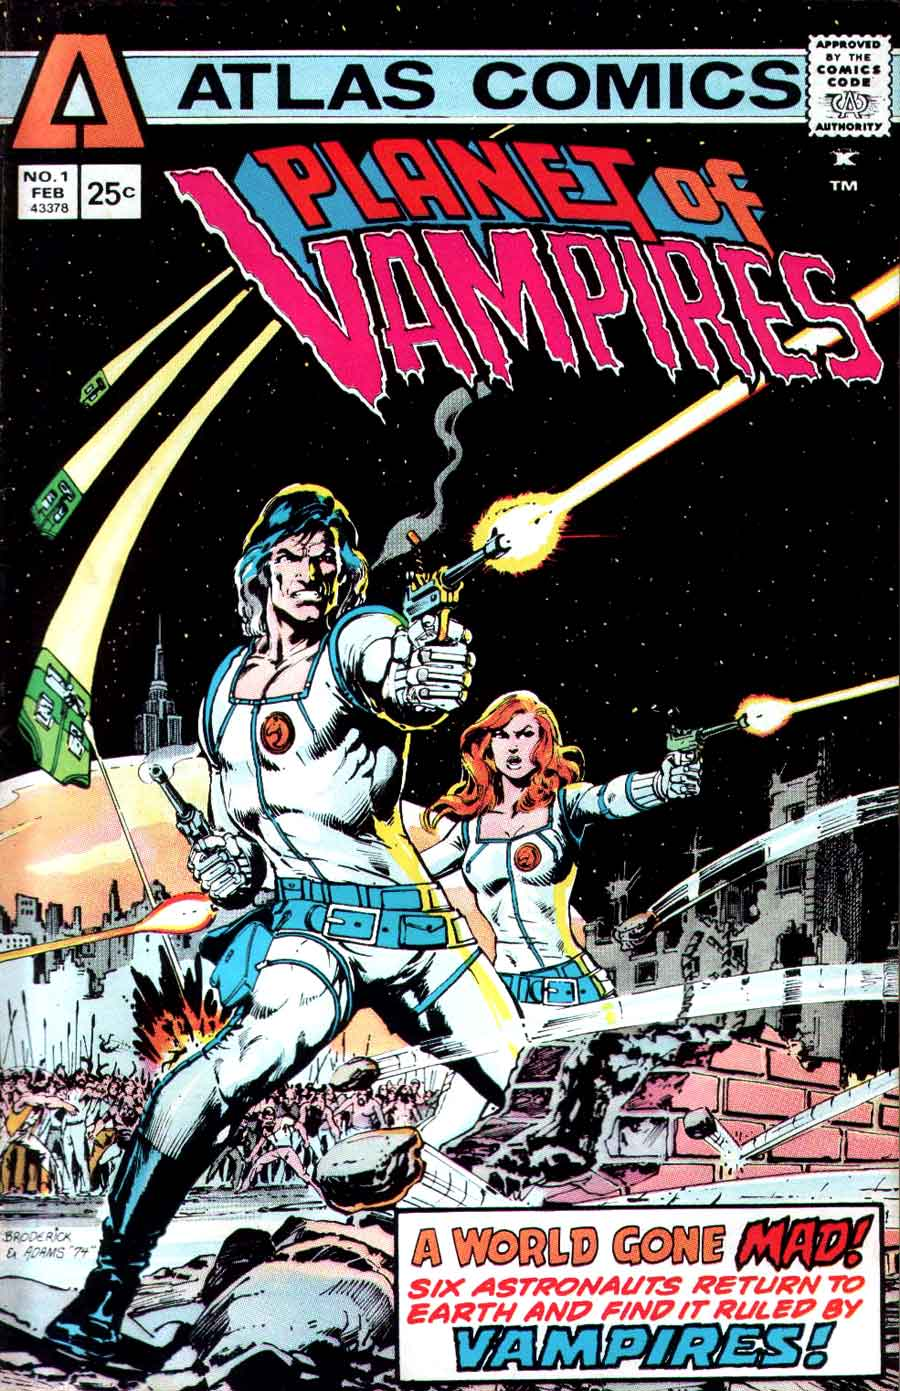 Planet of Vampires v1 #1 1970s bronze age comic book cover art by Neal Adams